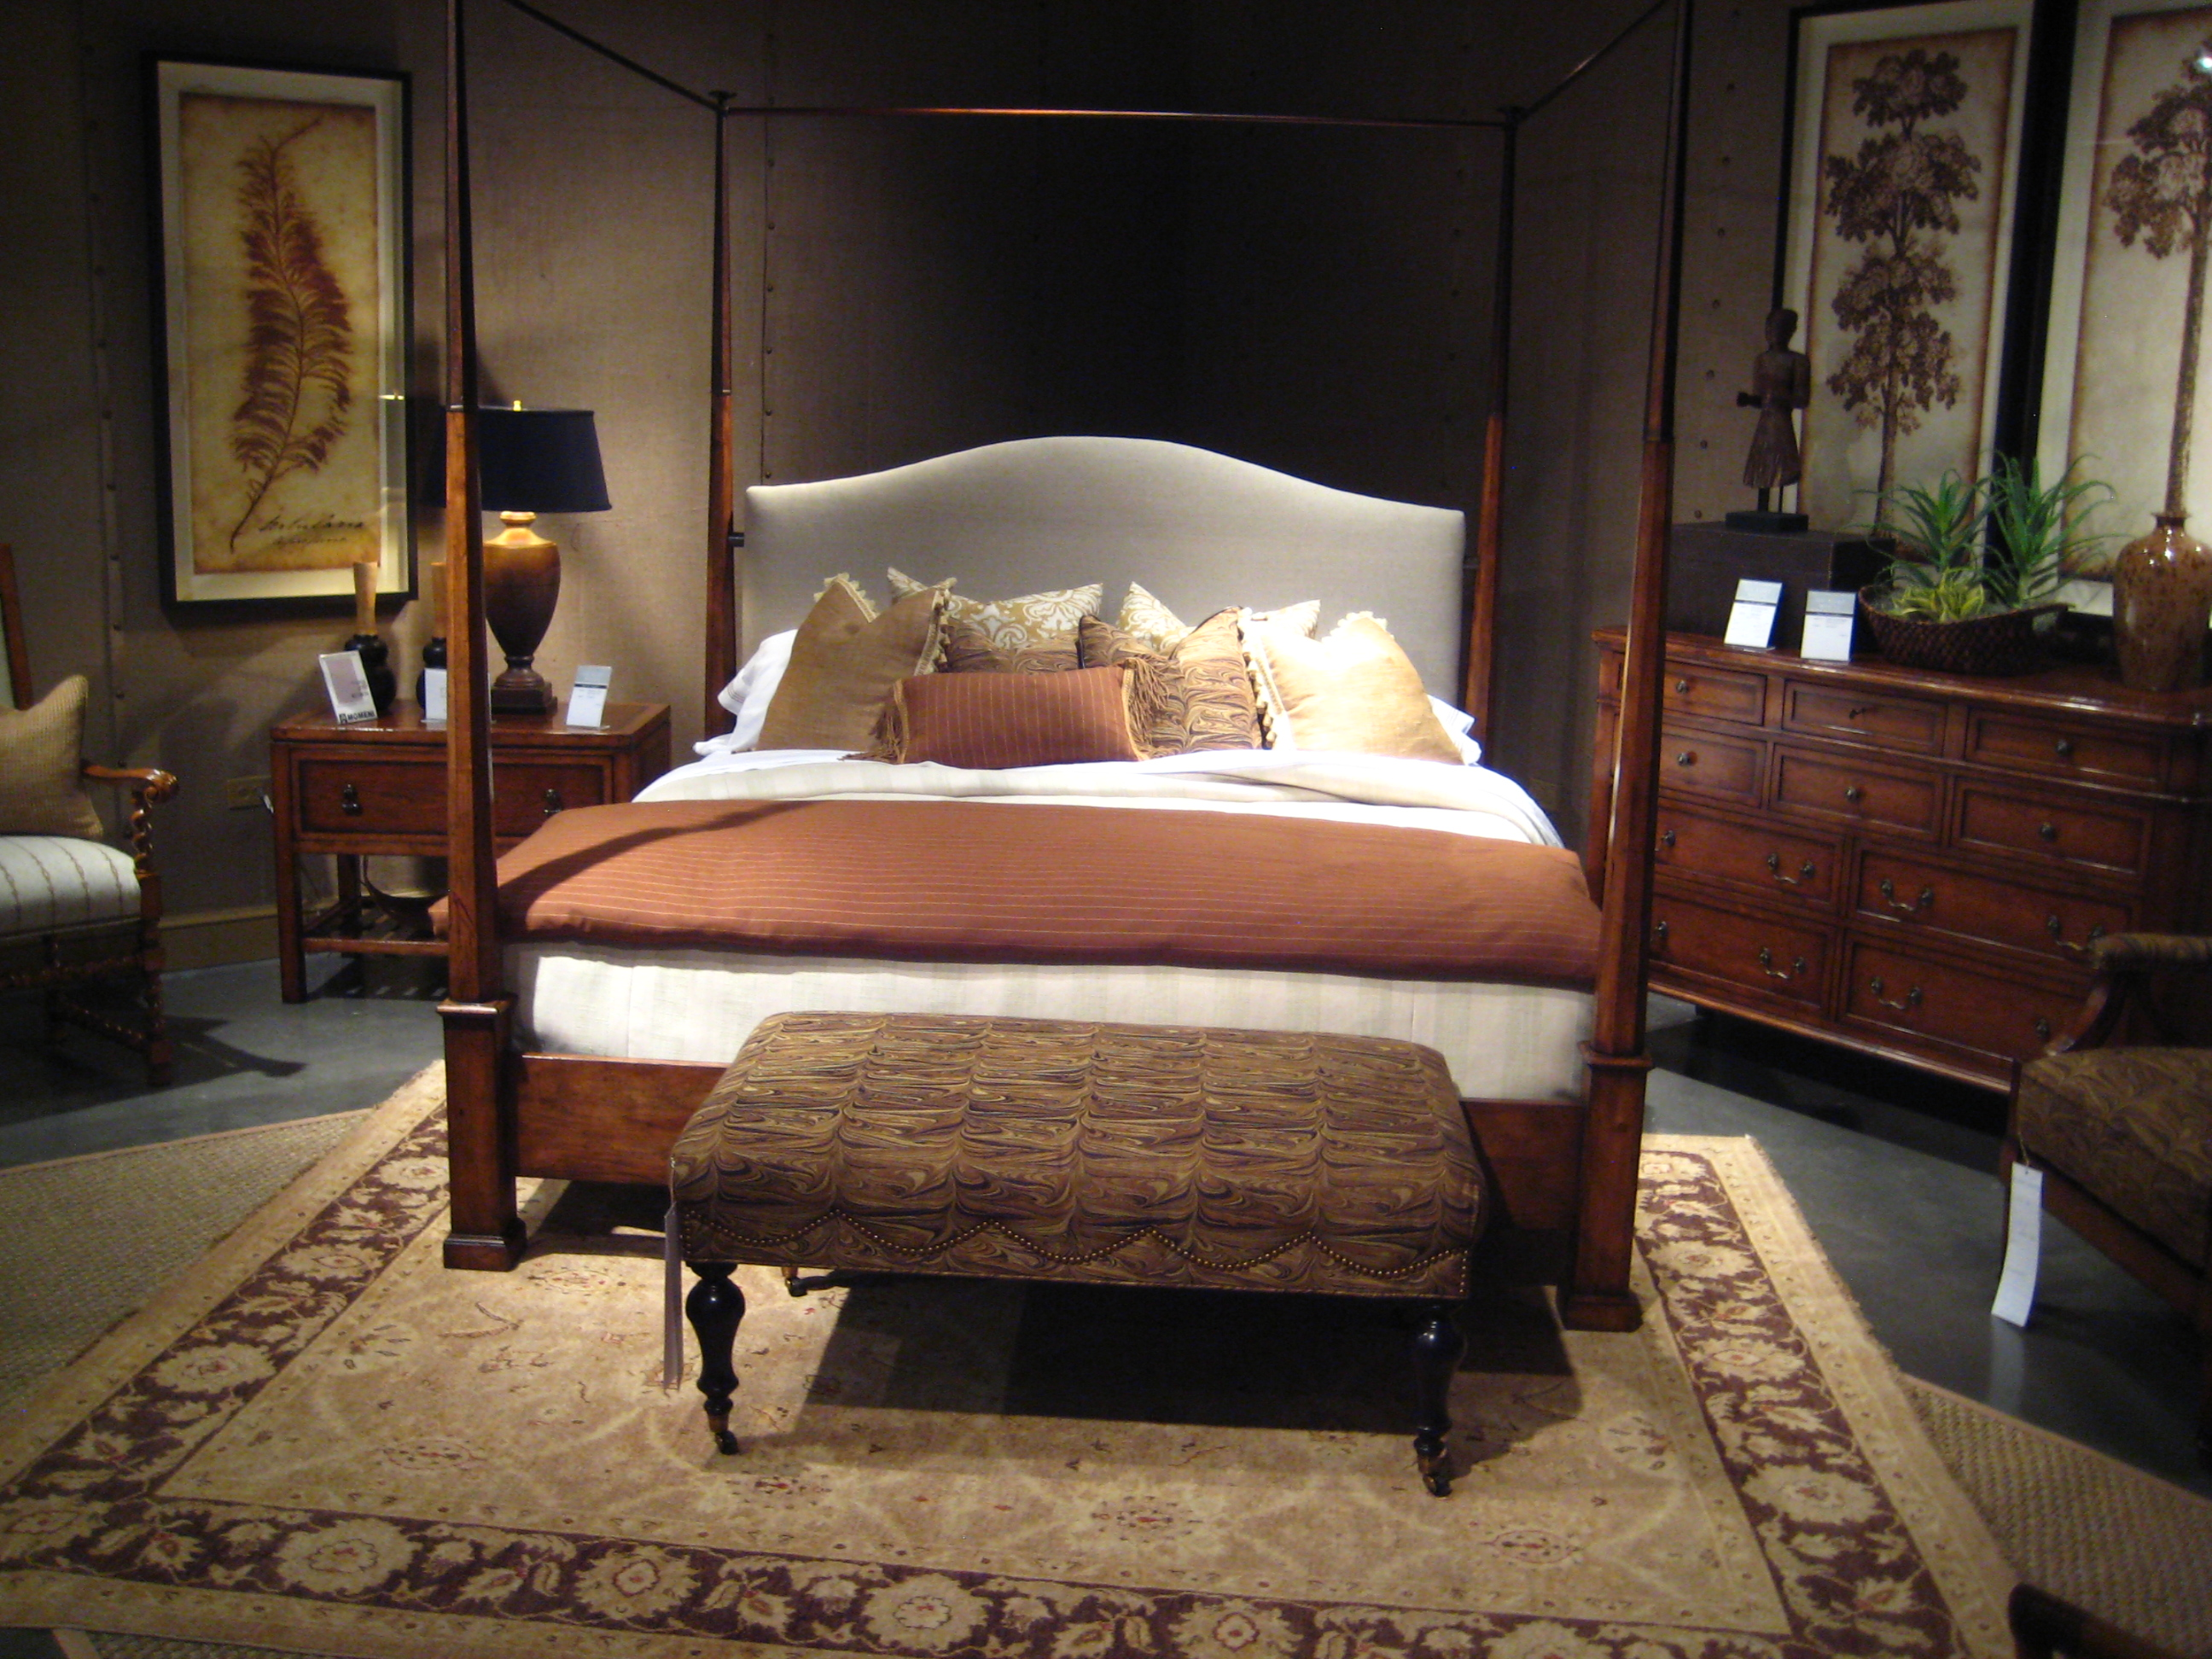 Awesome Bedroom Design With Wooden Bed On Momeni Rugs Plus Brown Wooden Dresser Ideas